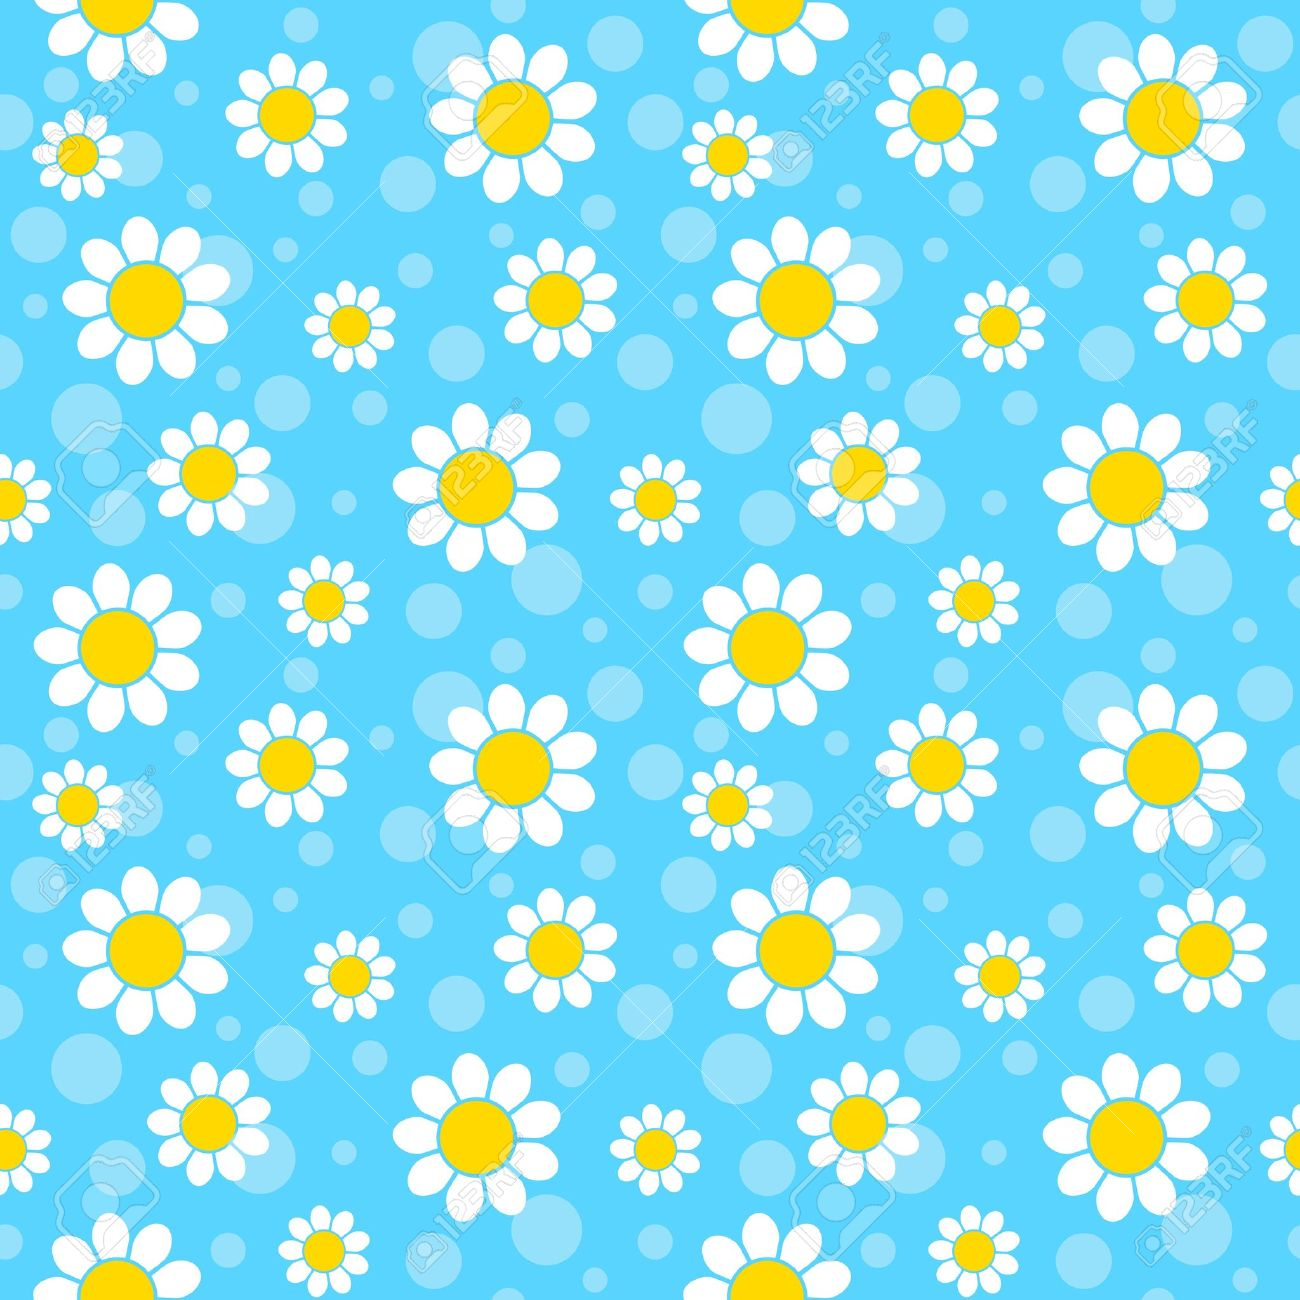 White Flowers On Blue Background Seamless Pattern Royalty Free